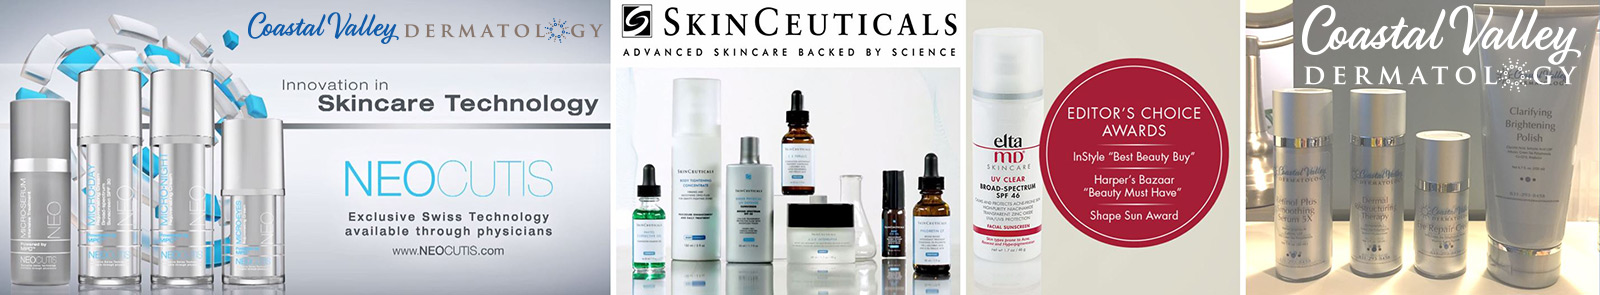 coastal-valley-dermatology-carmel-medical-grade-skincare-products-photo